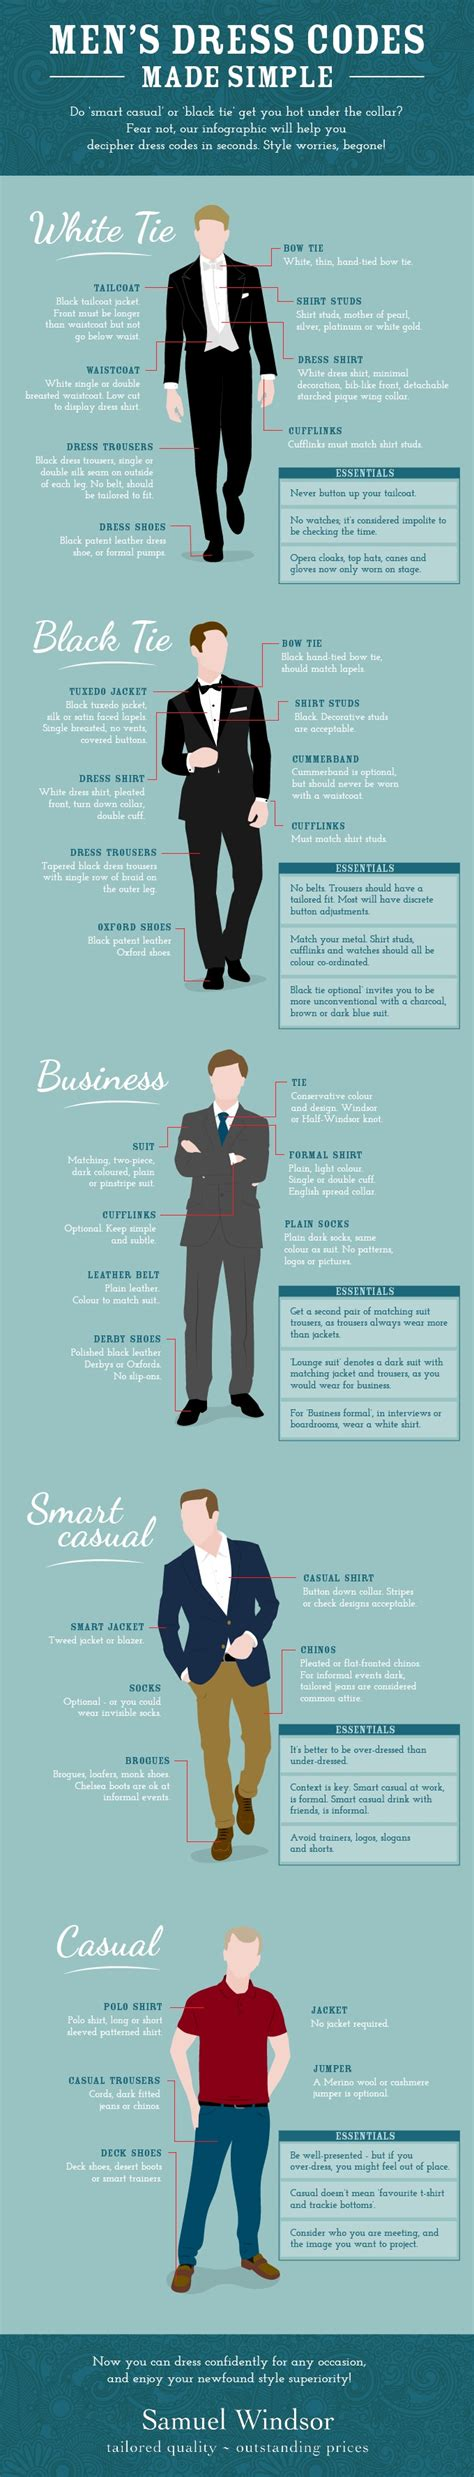 design dress code infographic a guide to dress codes for men from smart